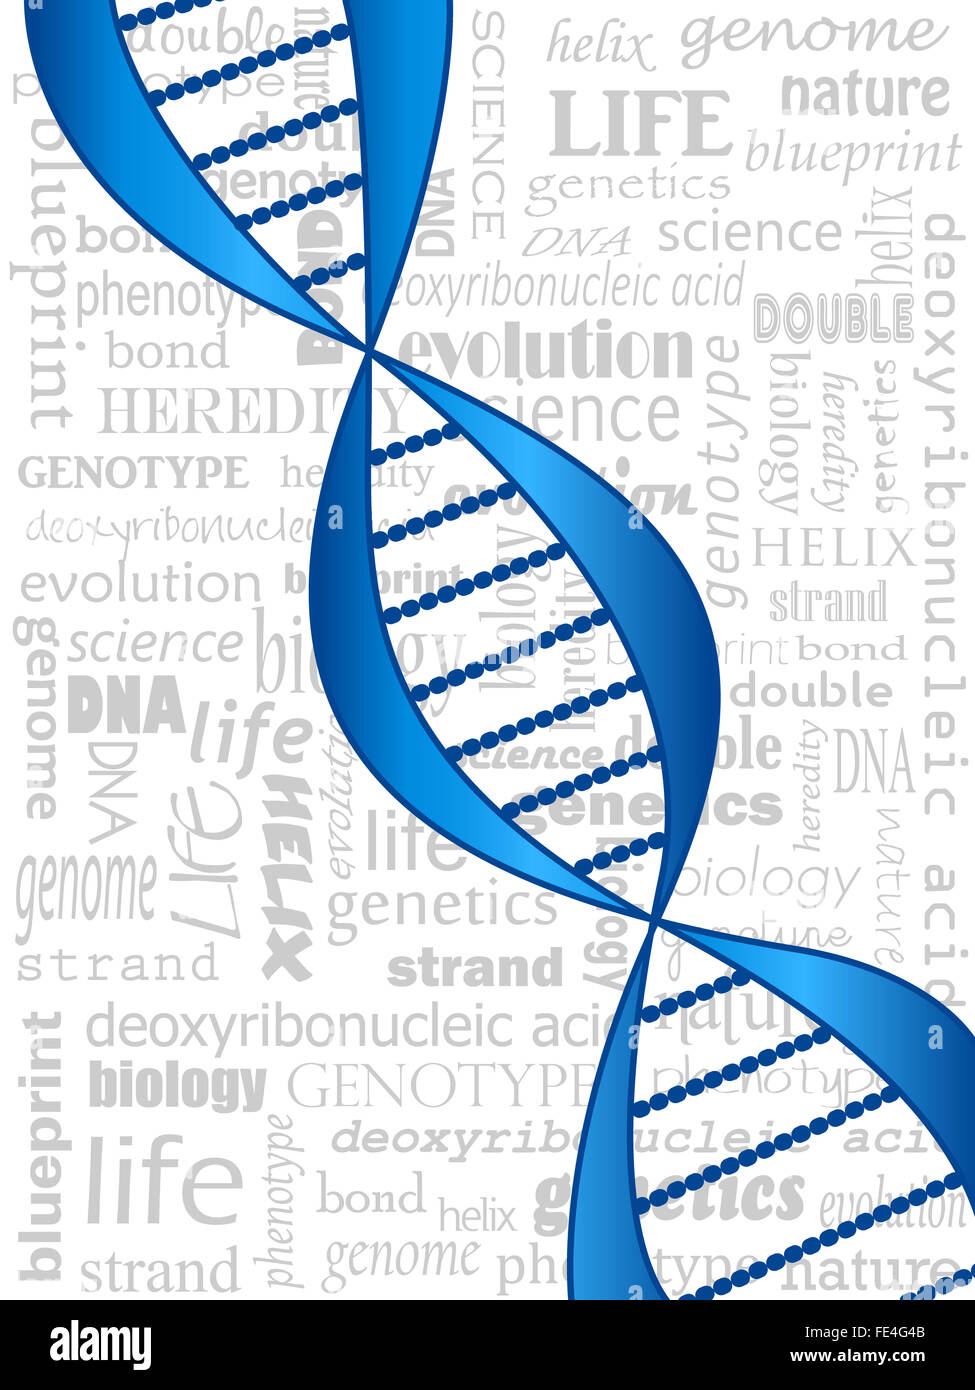 Dna double helix over related word background stock photo 94757499 dna double helix over related word background malvernweather Gallery